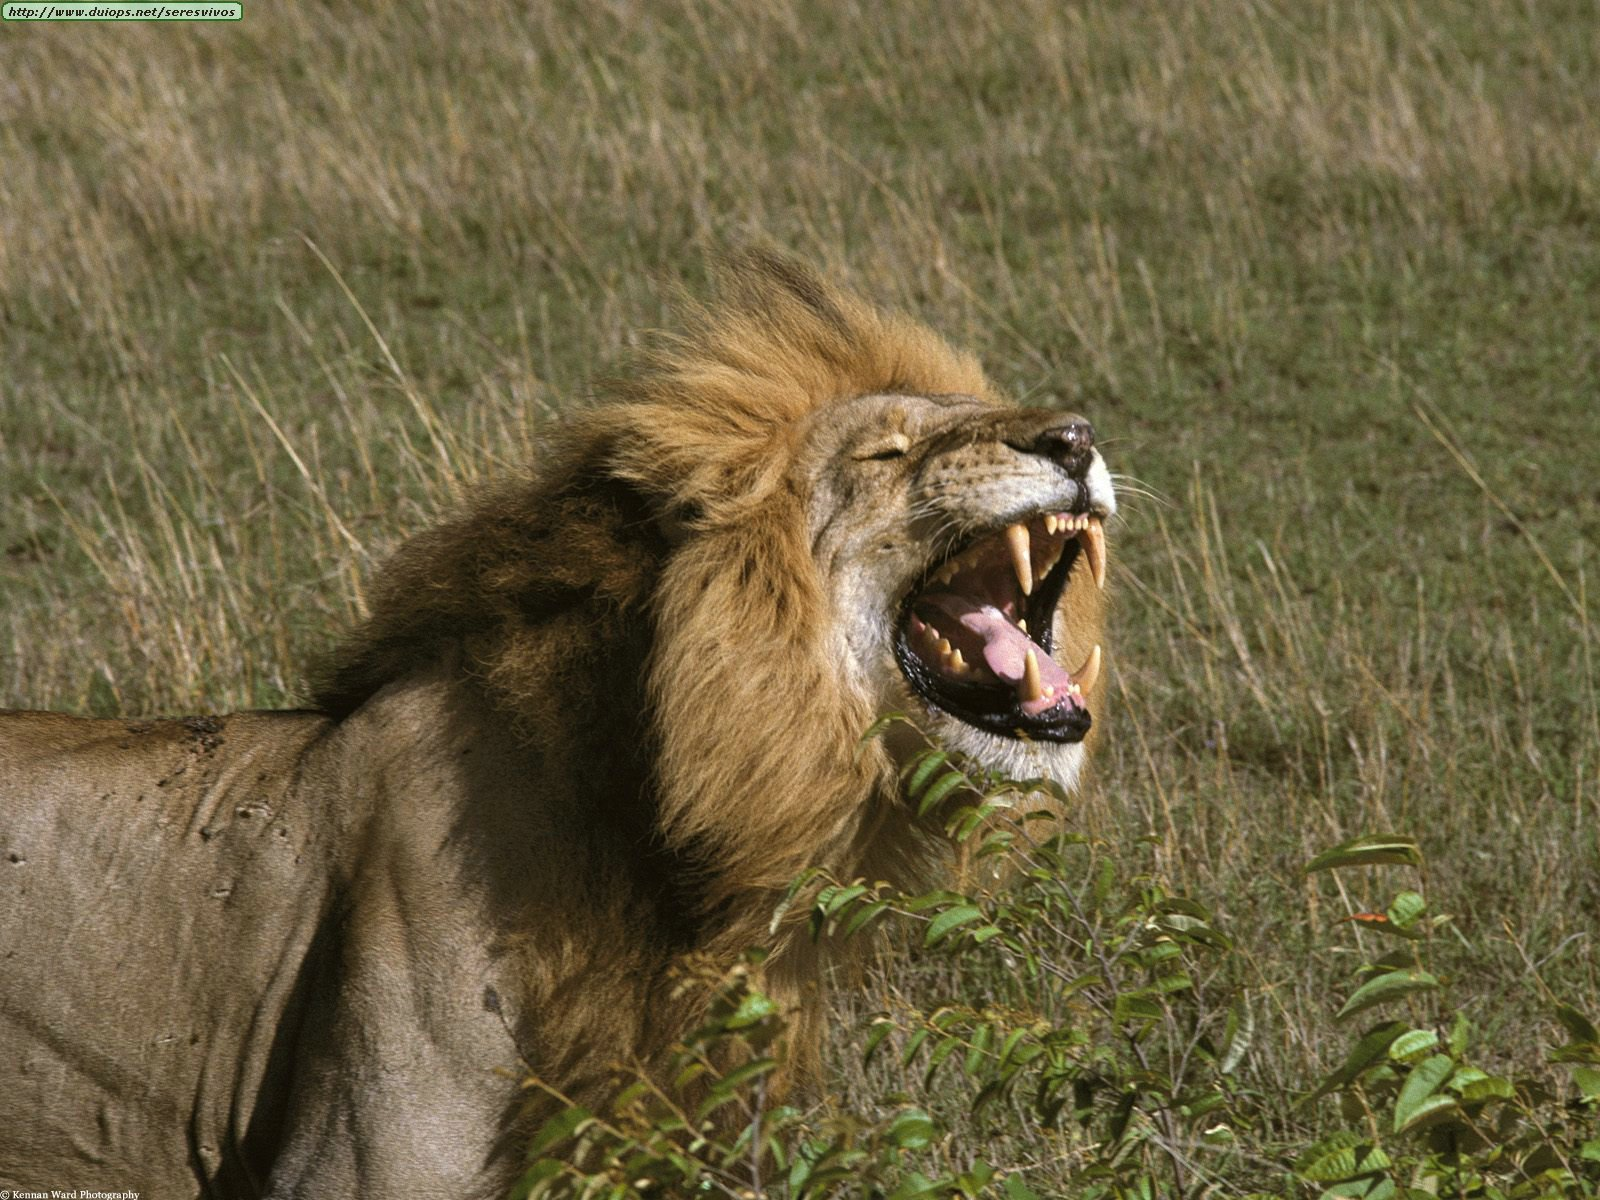 The%20King%20Of%20Smiles,%20African%20Lion,%20Tanzania,%20Africa